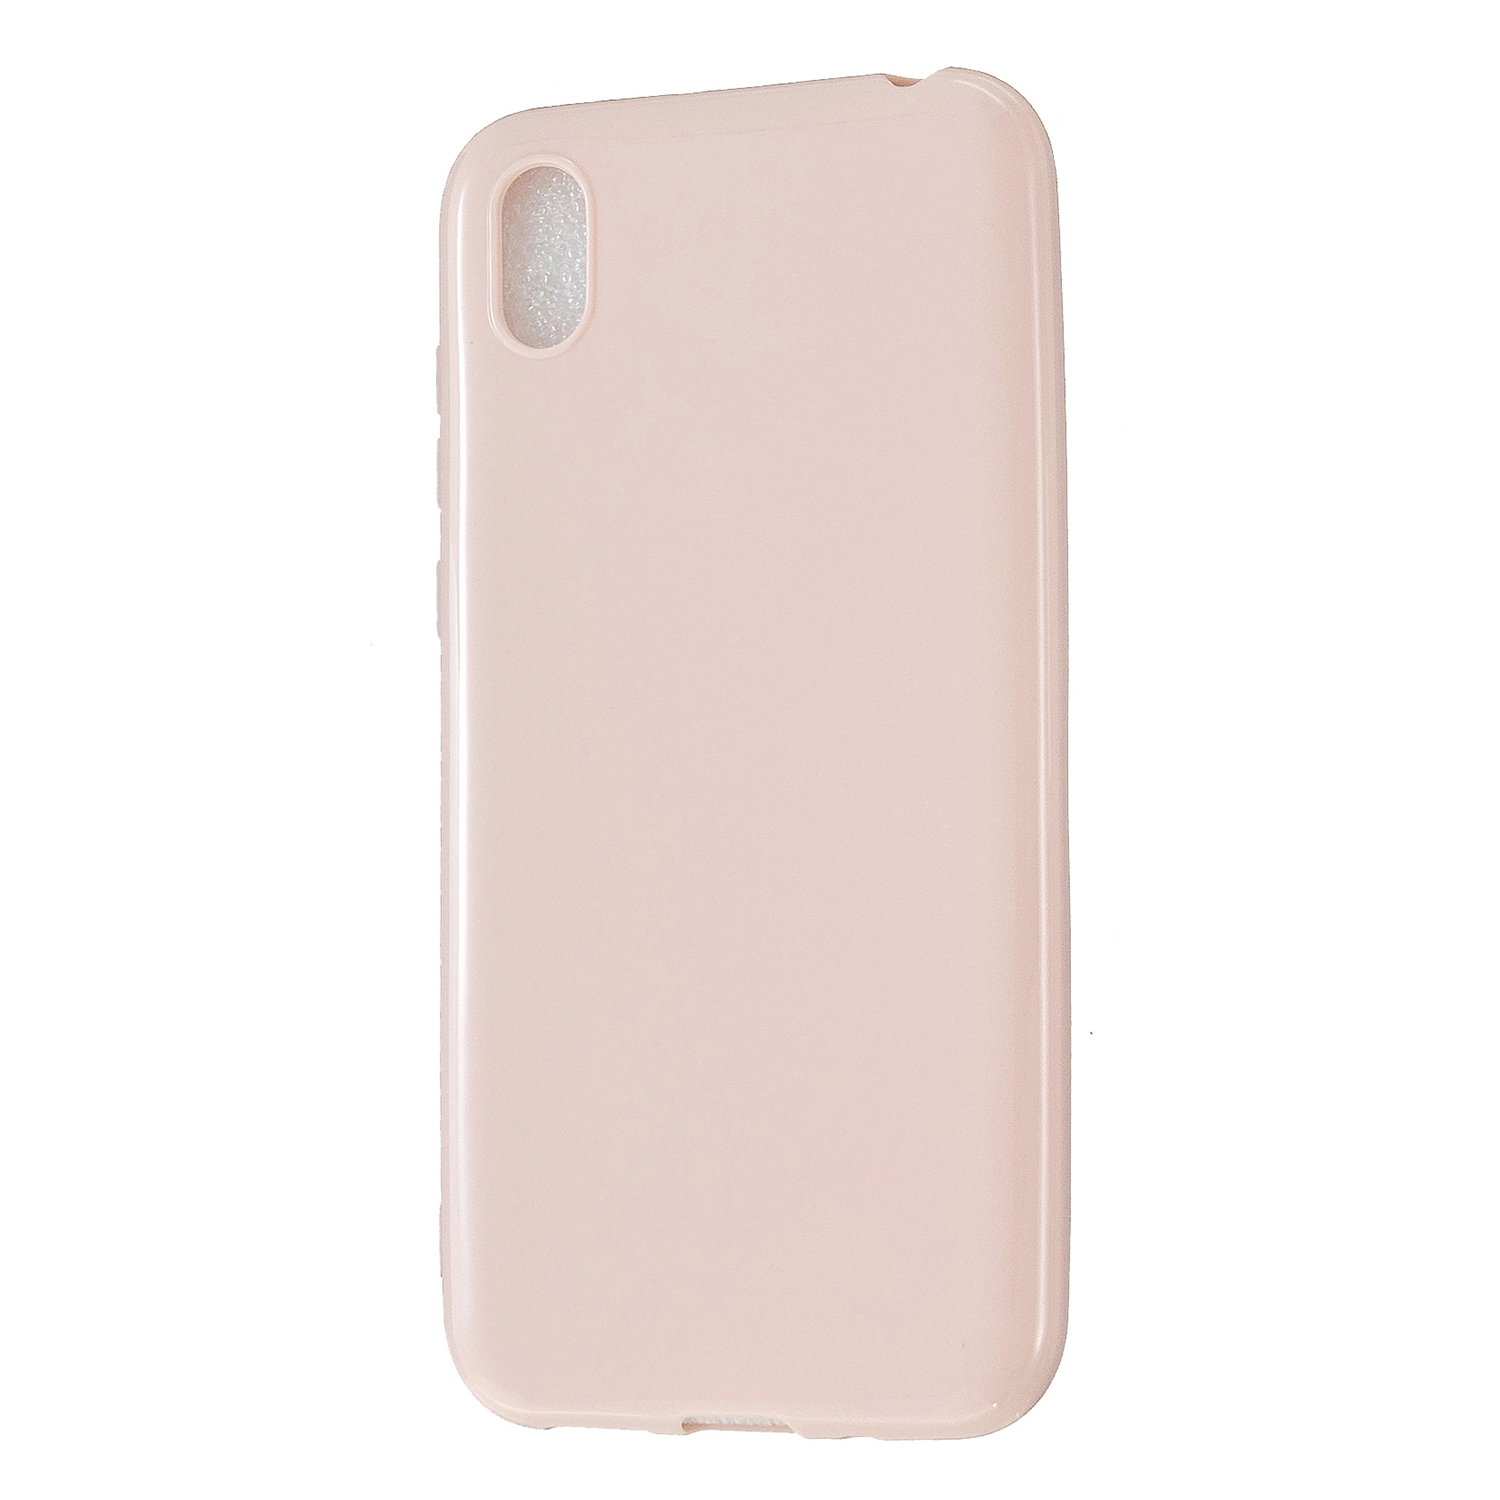 For HUAWEI Y5 2018/2019 TPU Phone Case Simple Profile Delicate Finish Cellphone Cover Full Body Protection Sakura pink